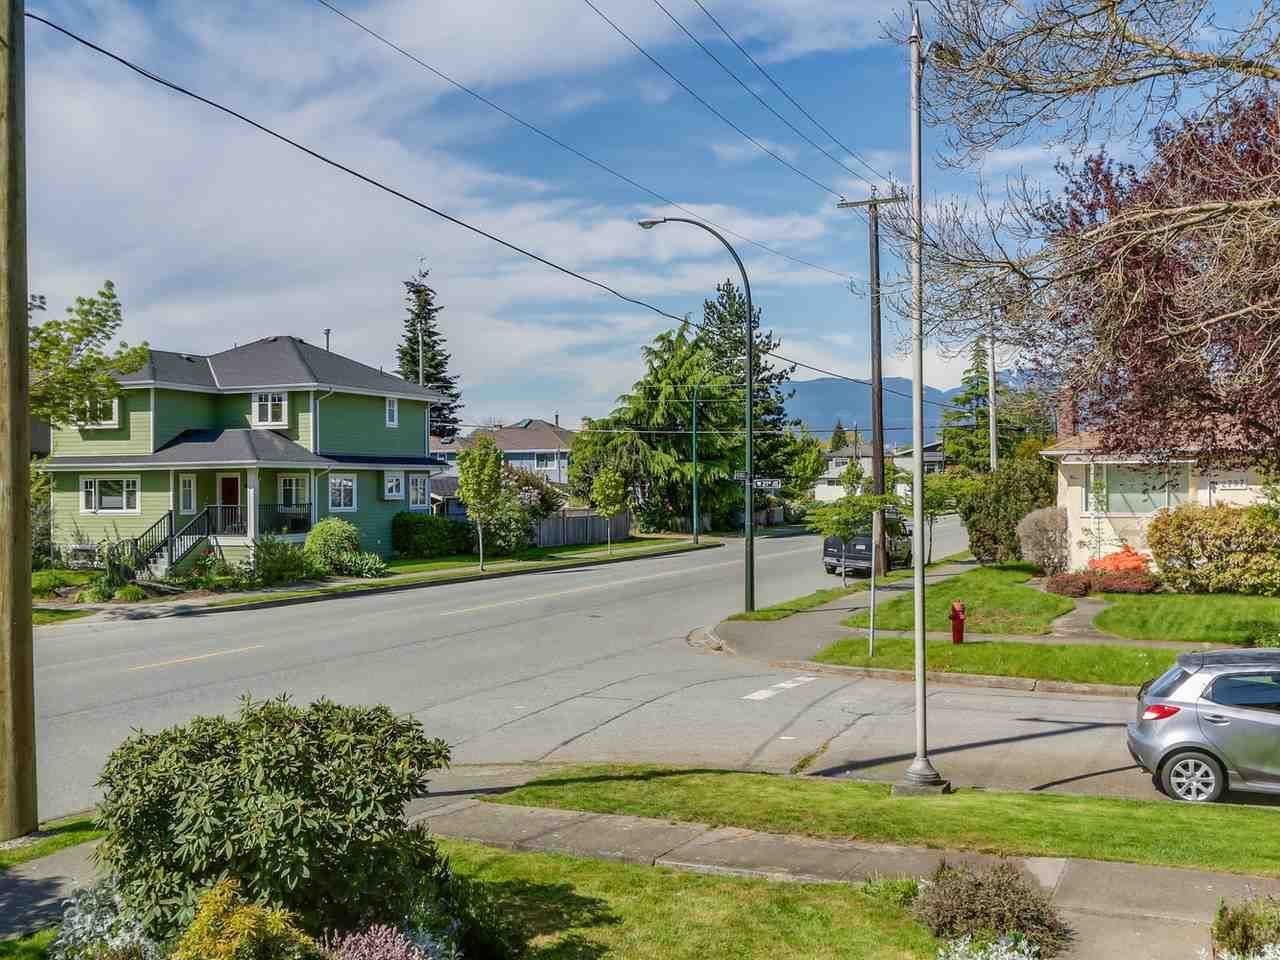 Photo 14: Photos: 2796 W 21ST Avenue in Vancouver: Arbutus House for sale (Vancouver West)  : MLS®# R2078868